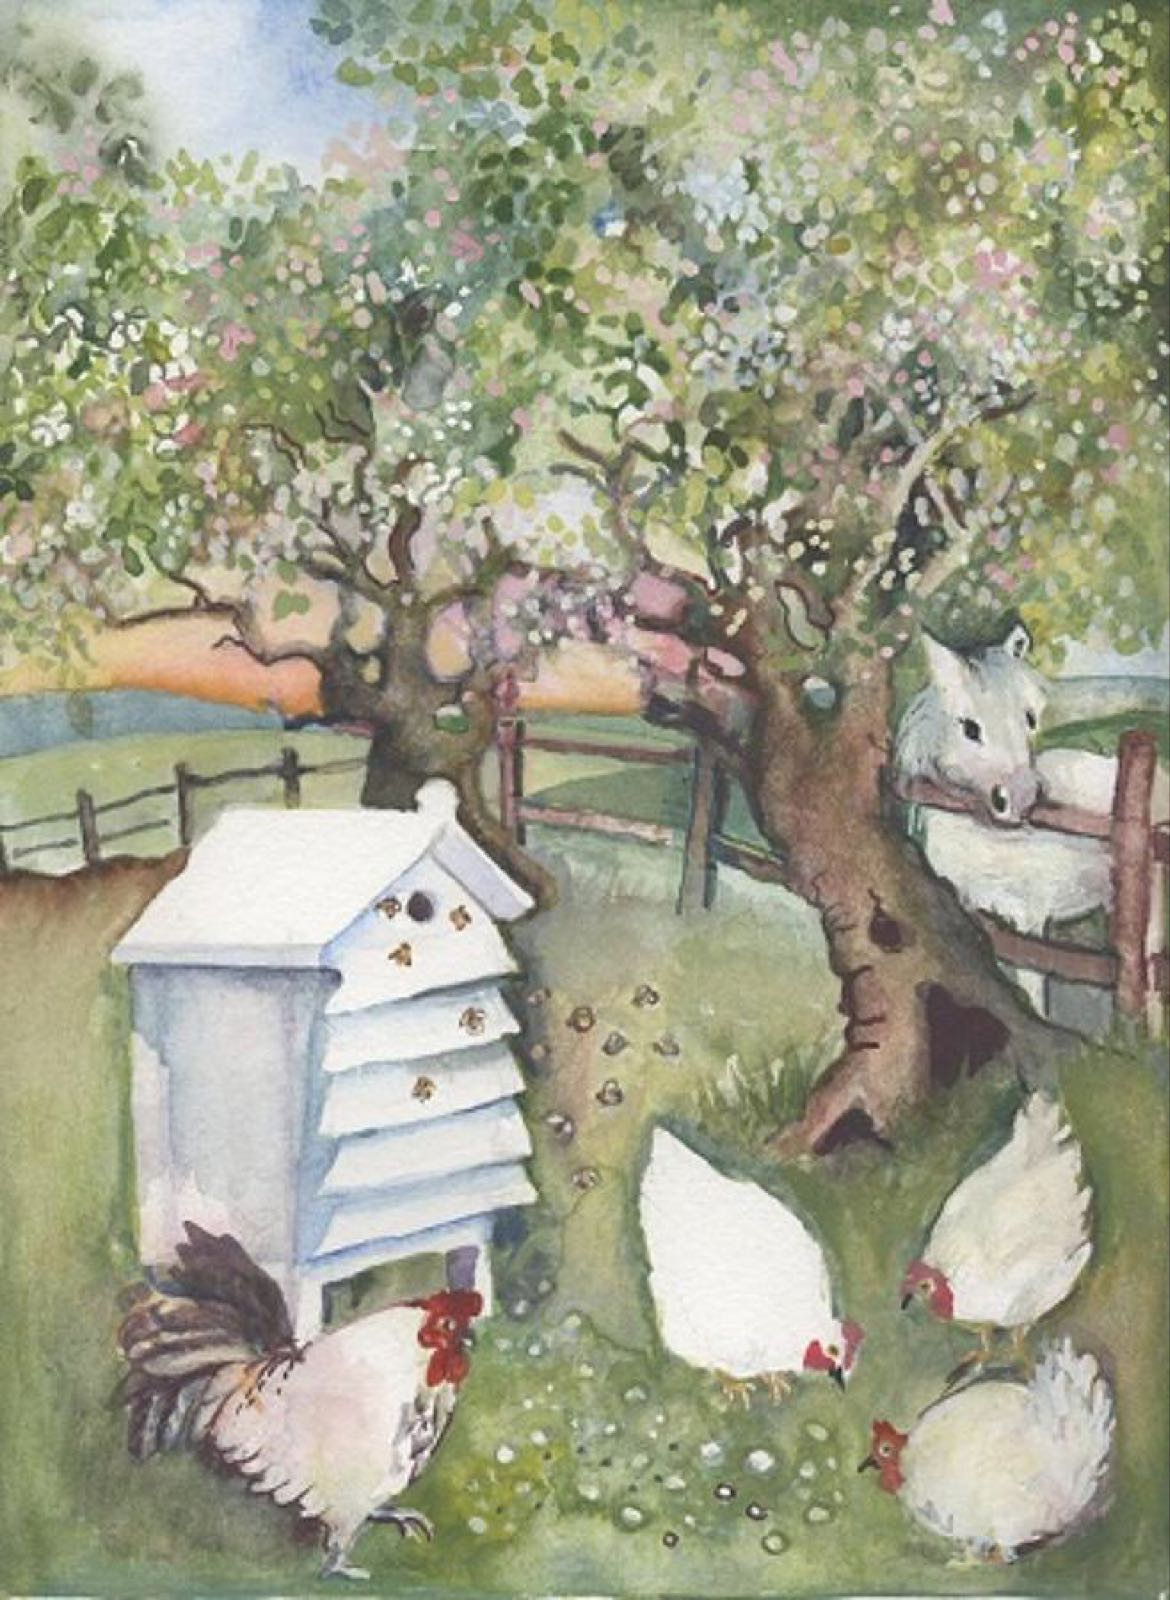 'Bees, Blossom & Chickens' Furzedown Gallery Mini Card